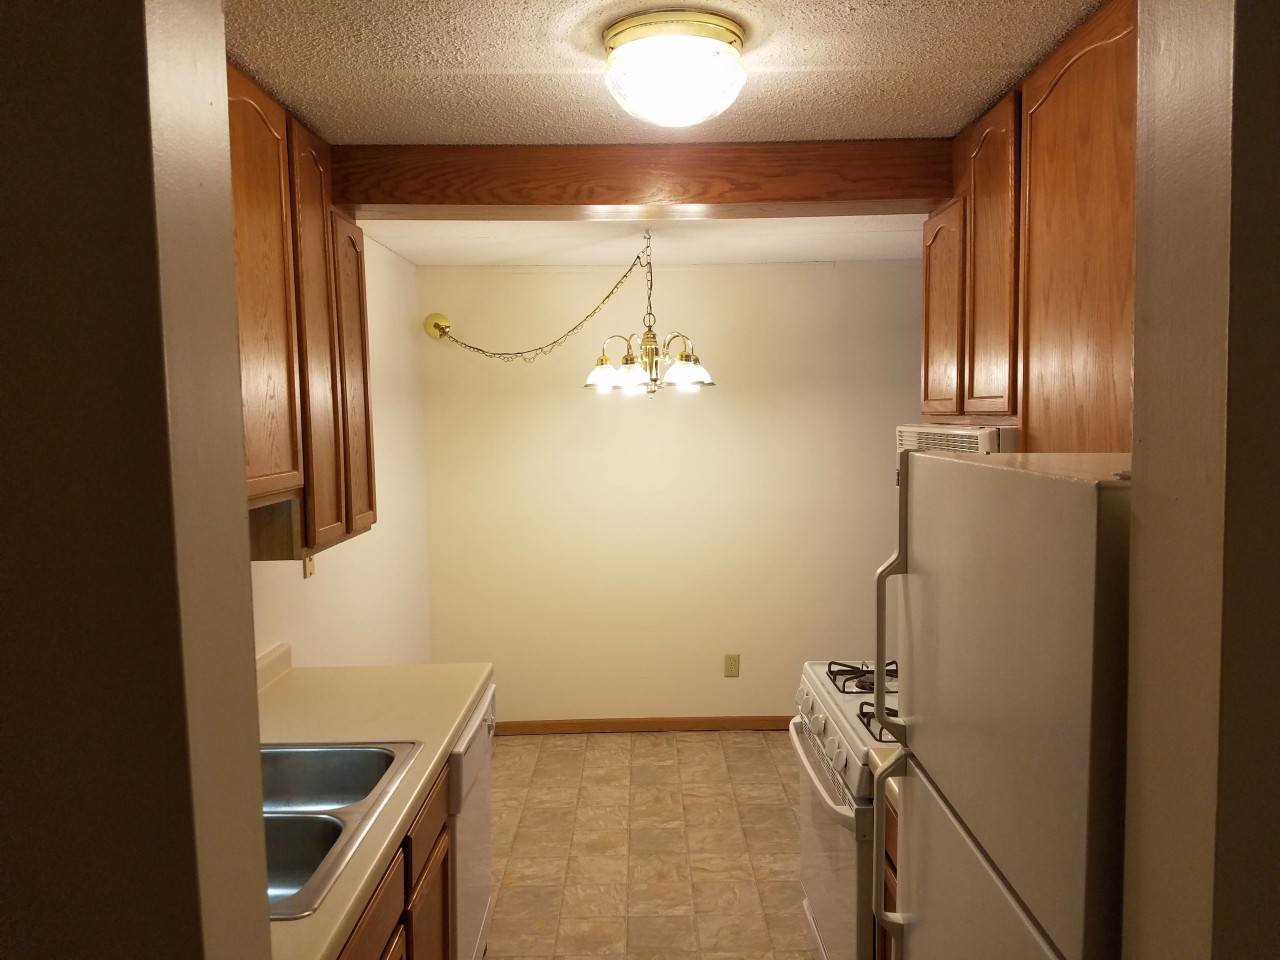 Mankato, MN Condos for Rent, Apartment Rentals: Condo.com™